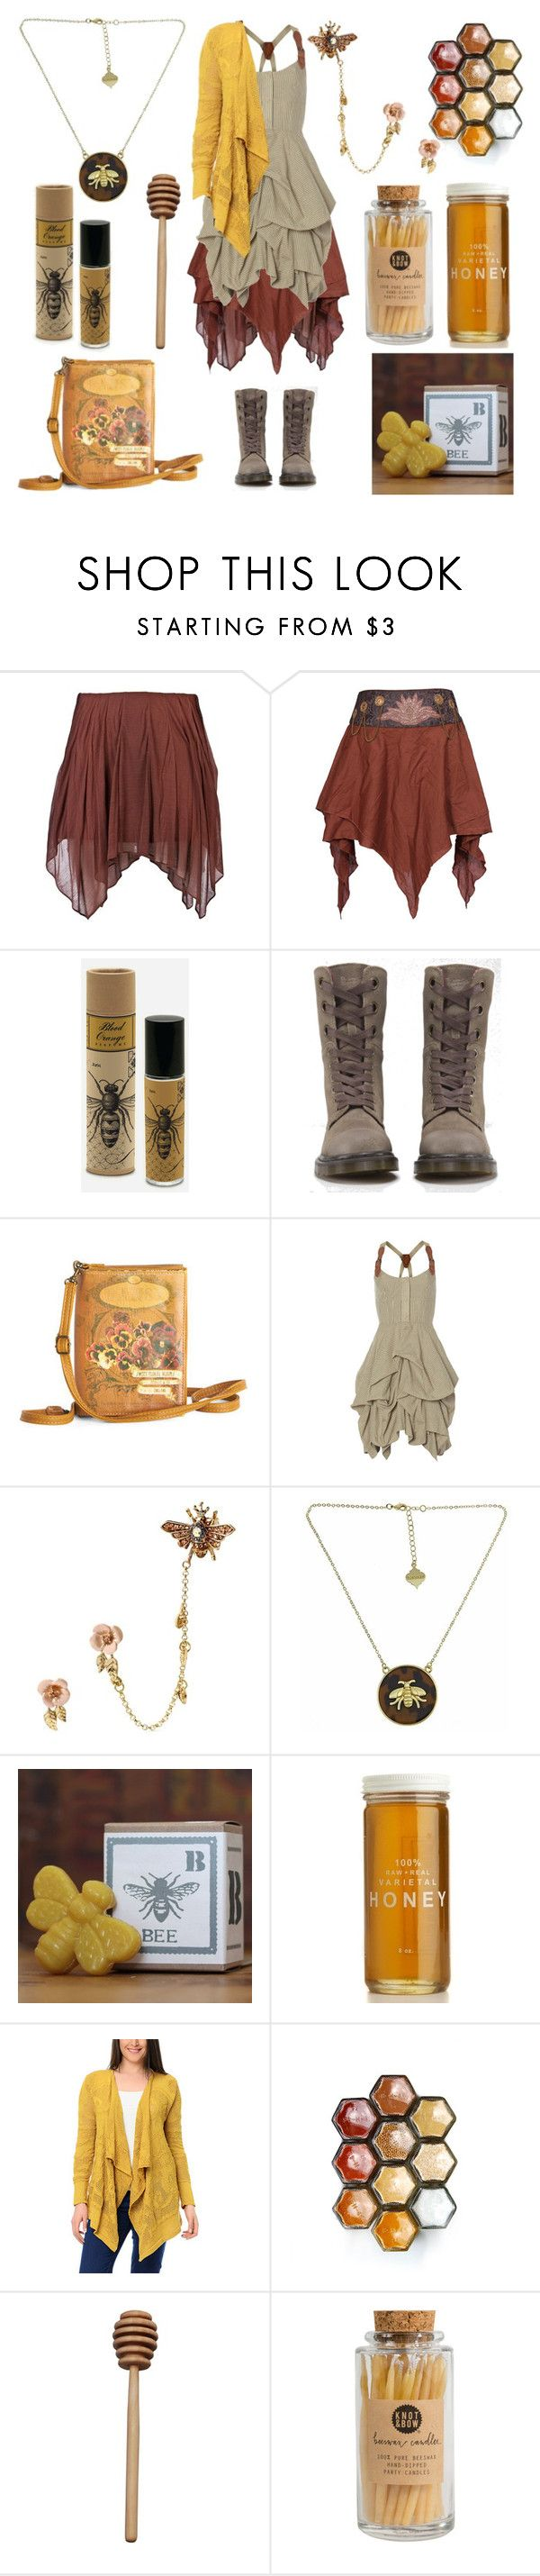 """""""The Beekeeper"""" by maggiehemlock ❤ liked on Polyvore featuring мода, Jen Kao, Skeem, Dr. Martens, Disaster Designs, AllSaints, Betsey Johnson и Fornash"""